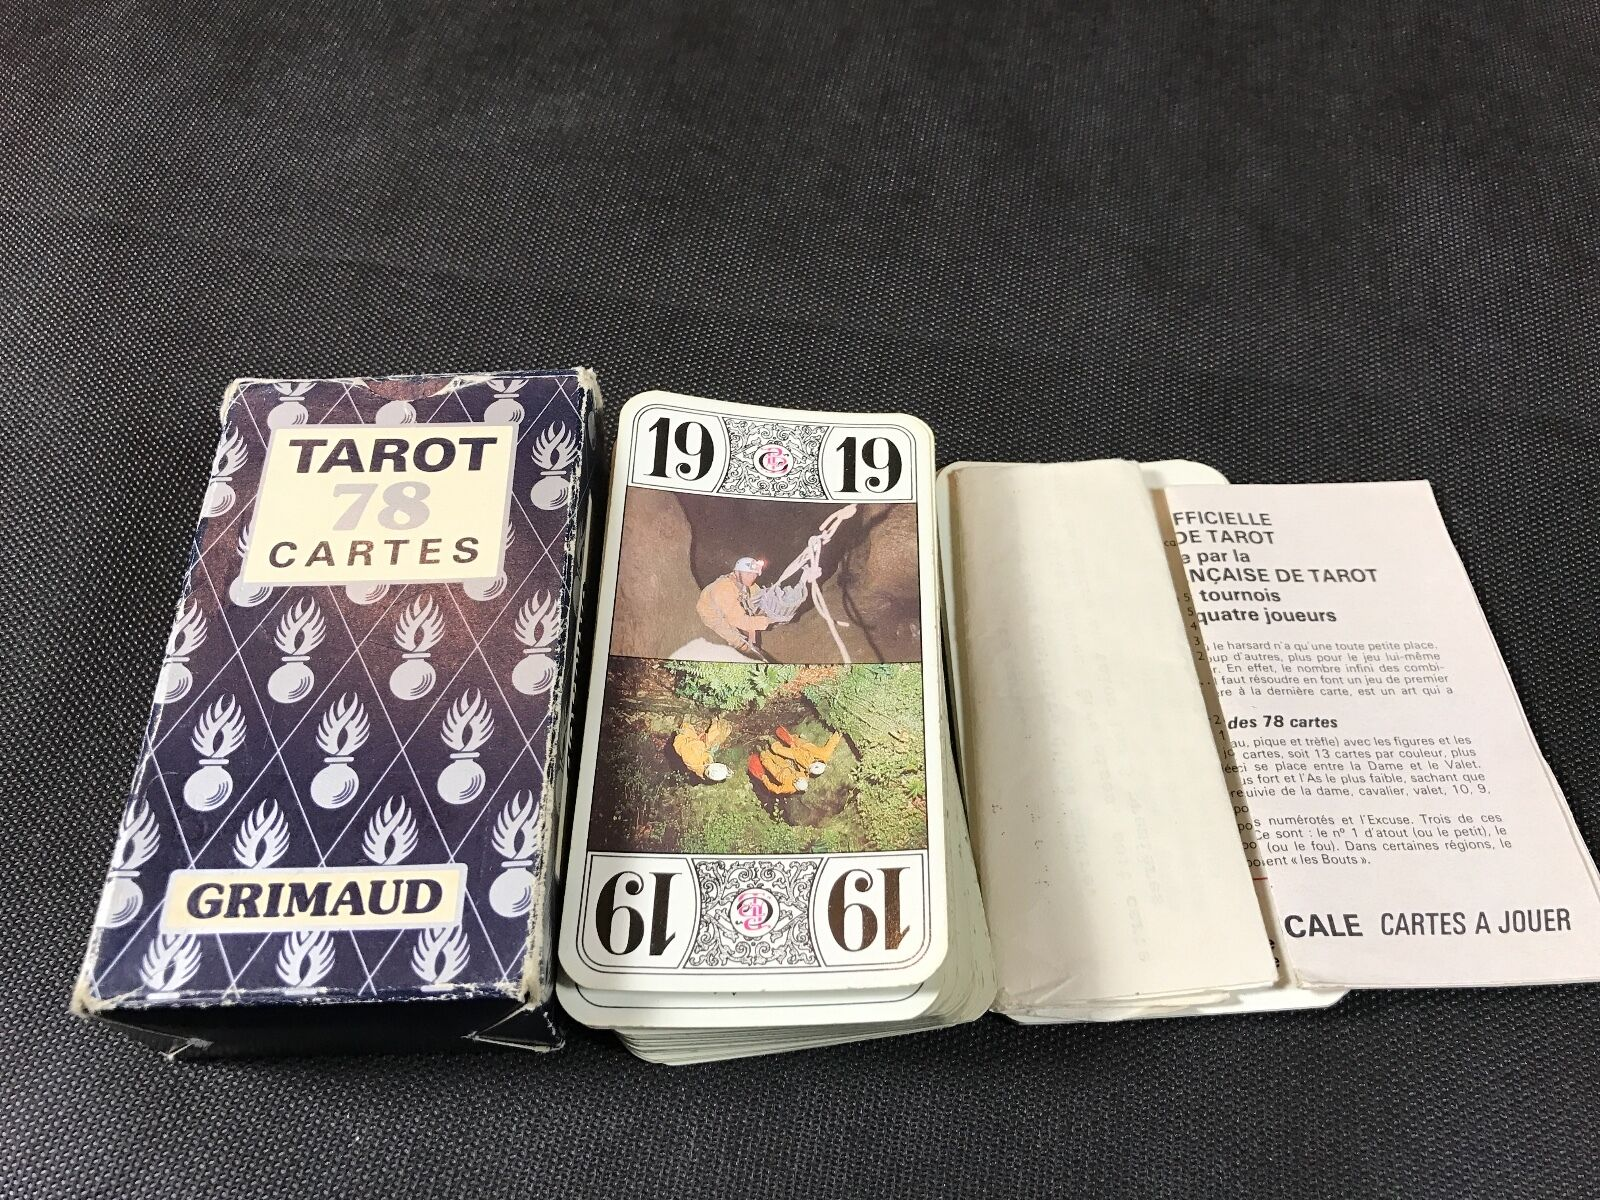 Old card game 78 complete gendarmerie grimaud tared